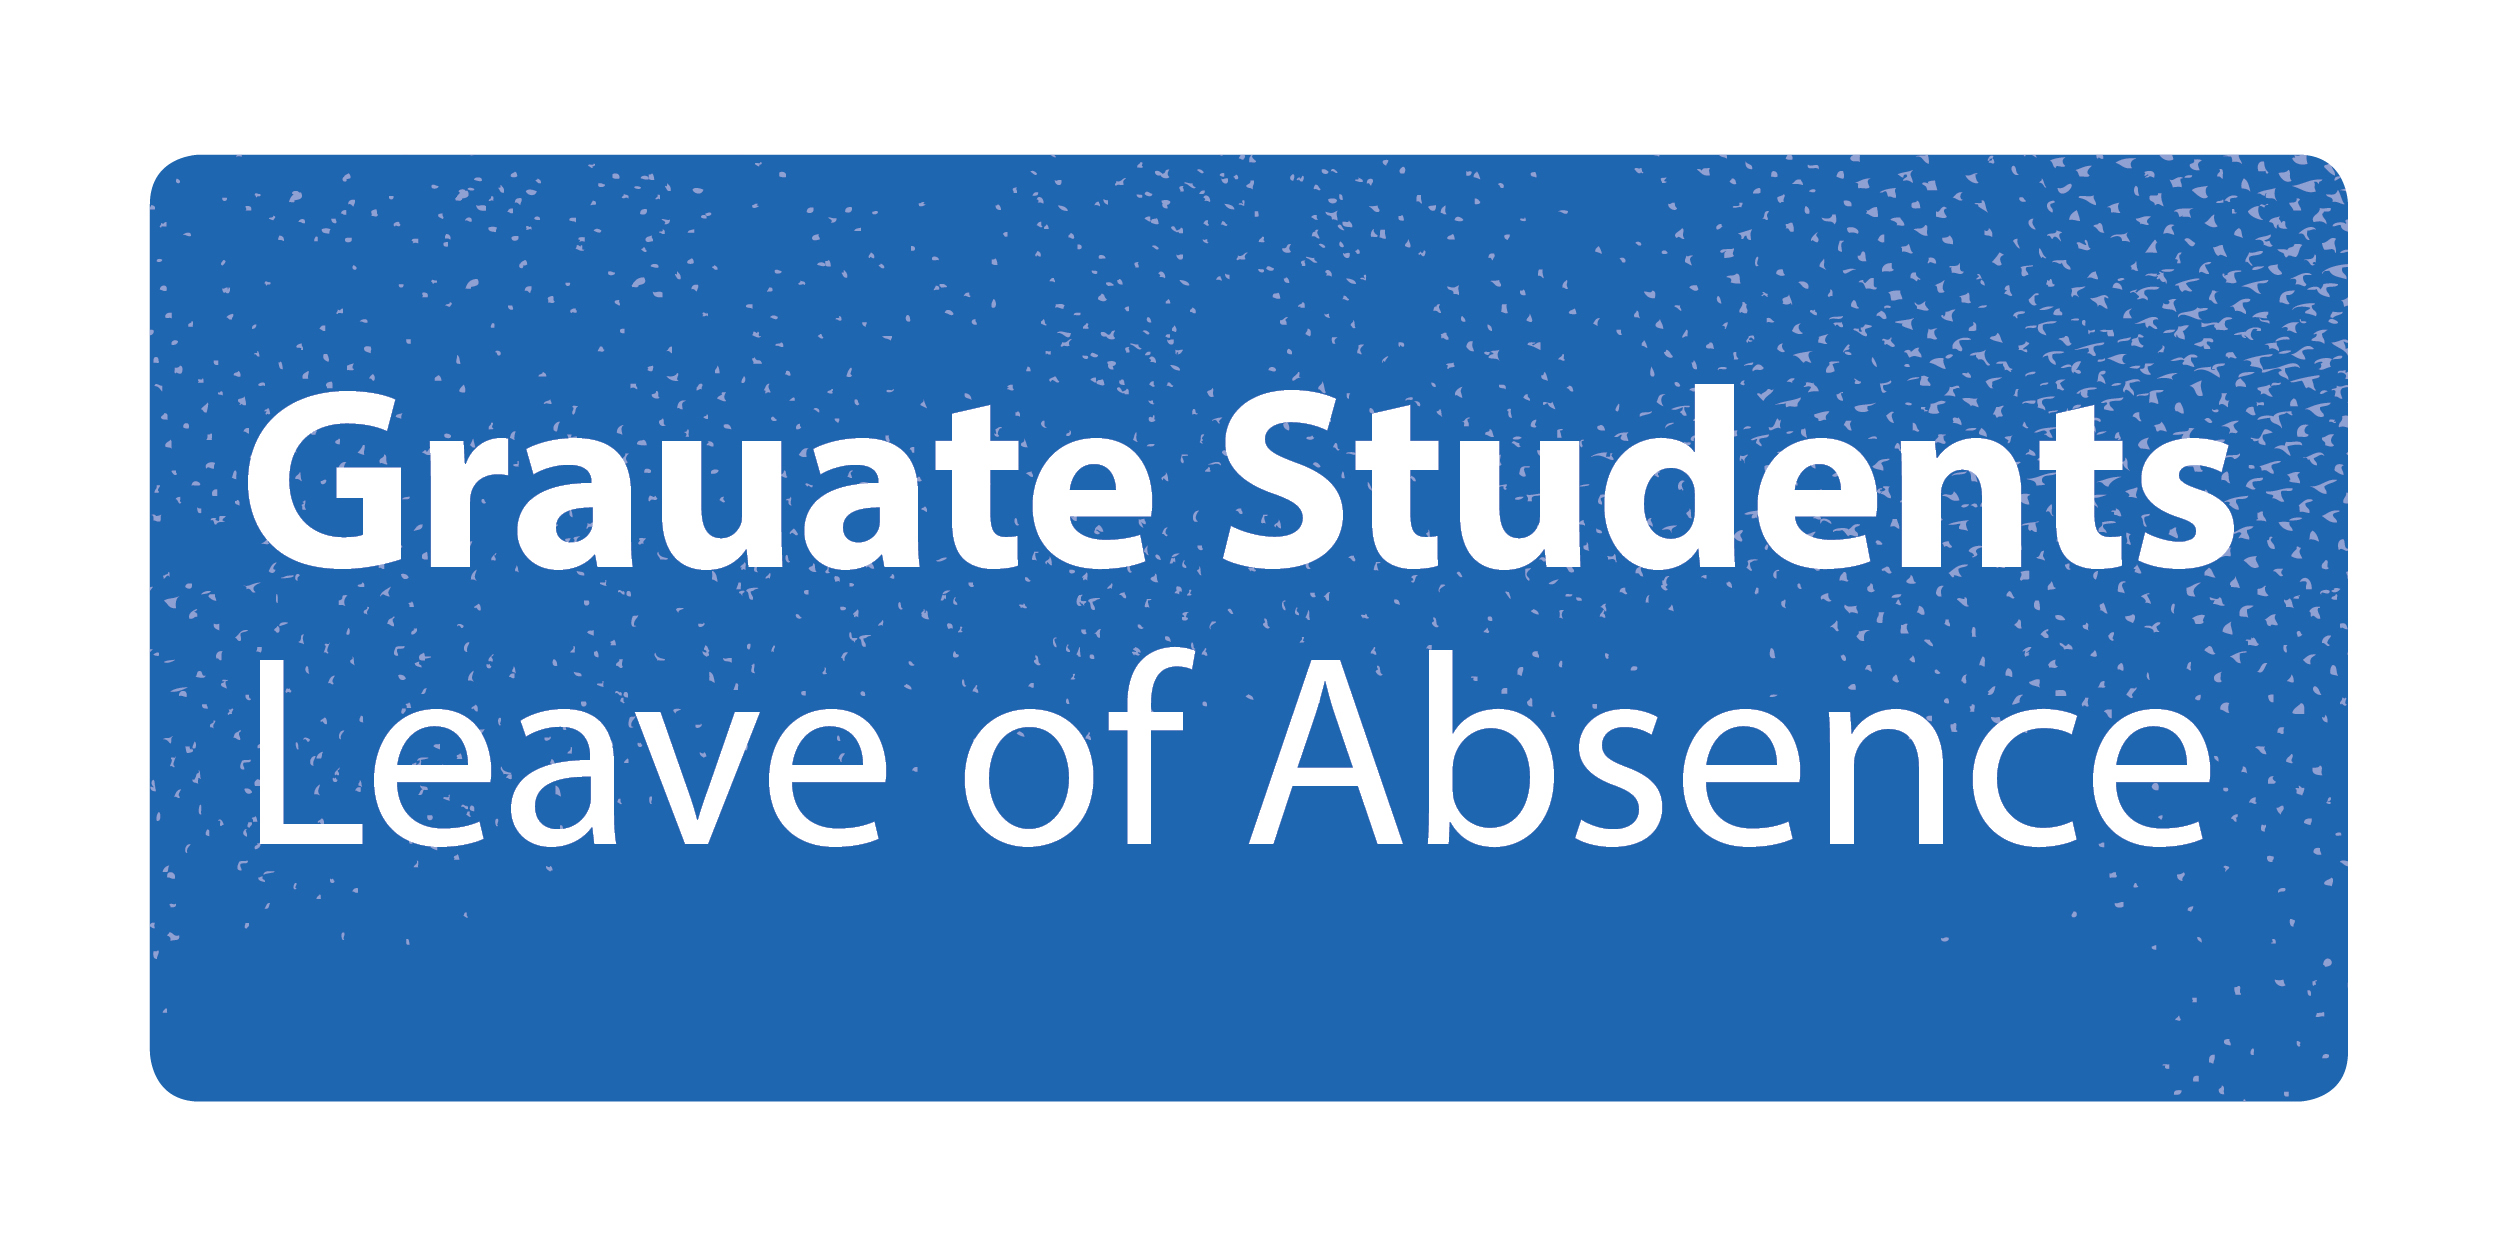 Graduate Students Leave of Absence